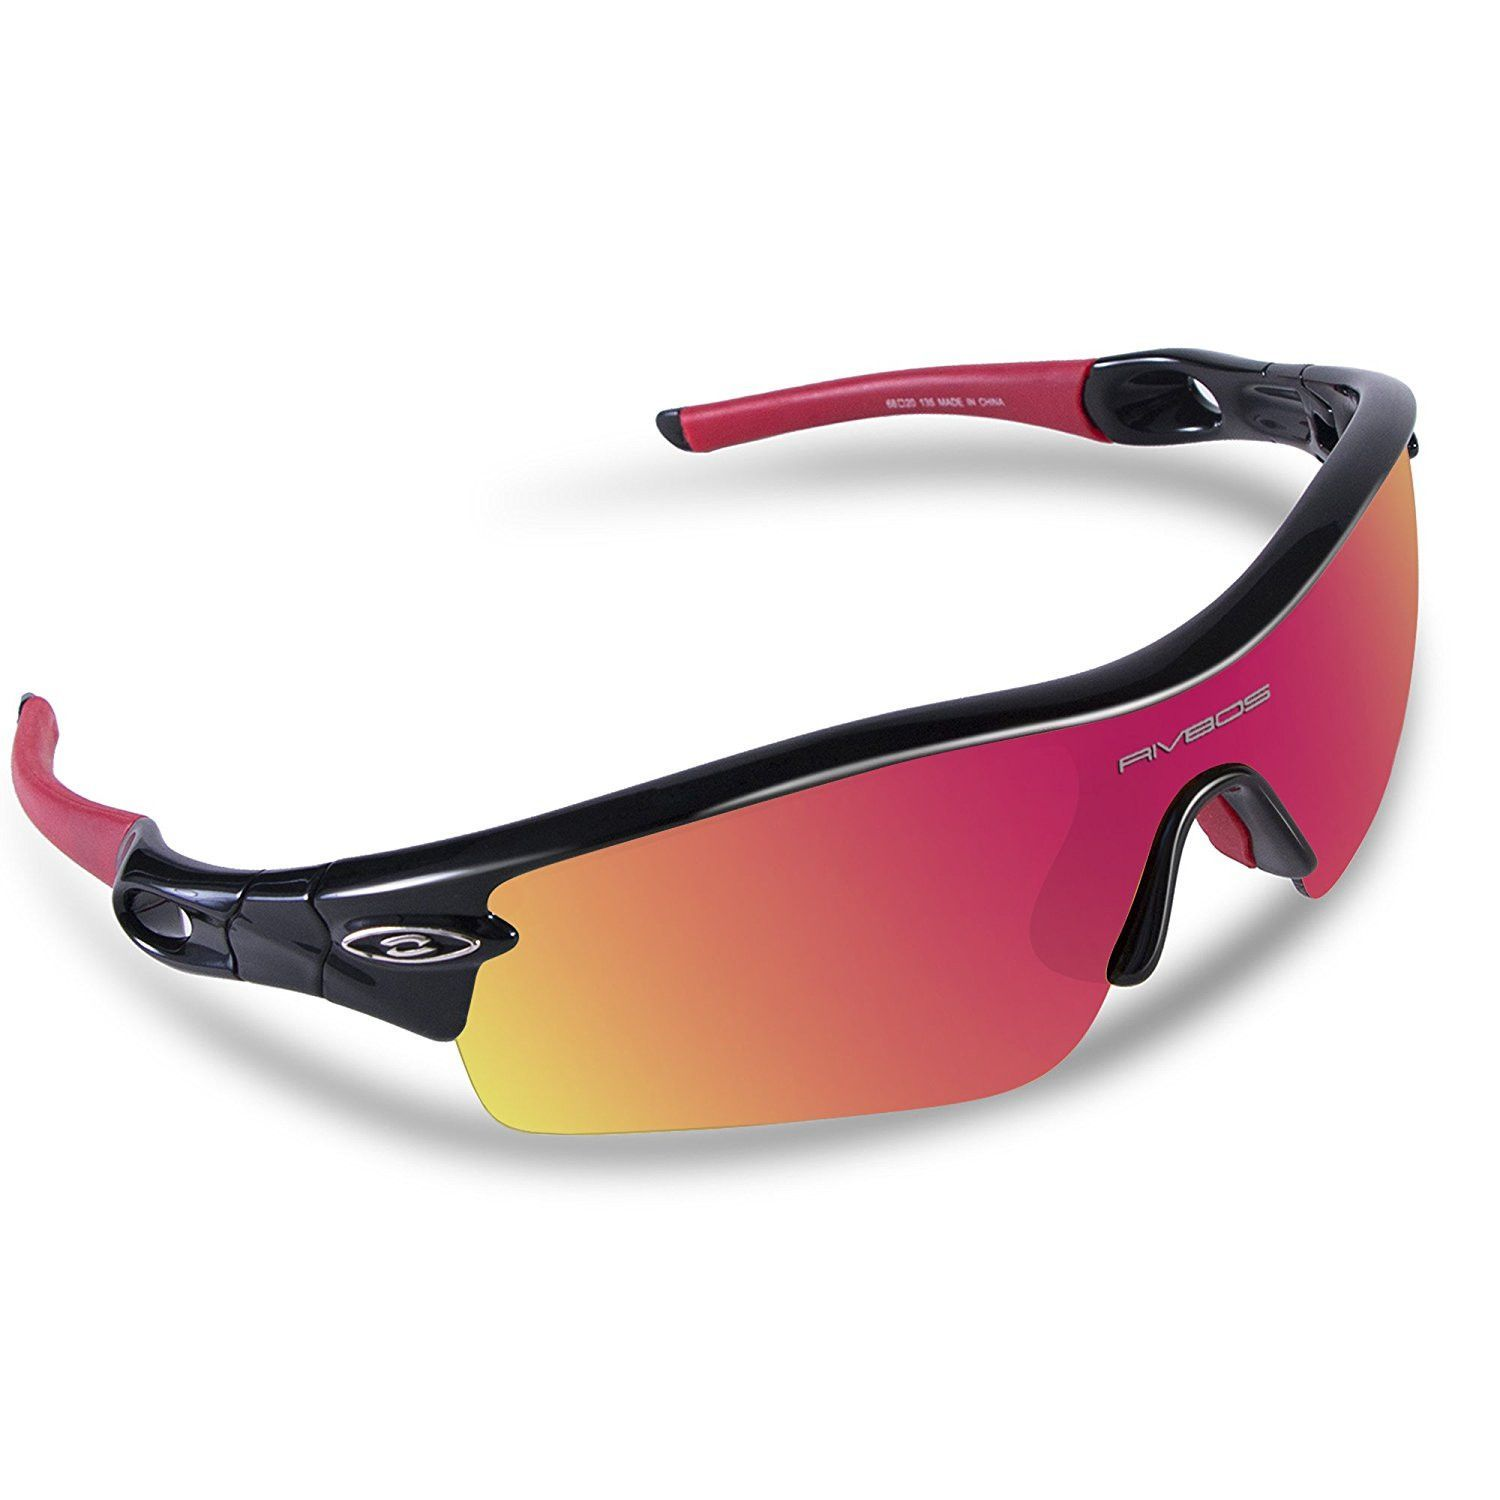 RIVBOS Unisex Polarized Sports Sunglasses with 5